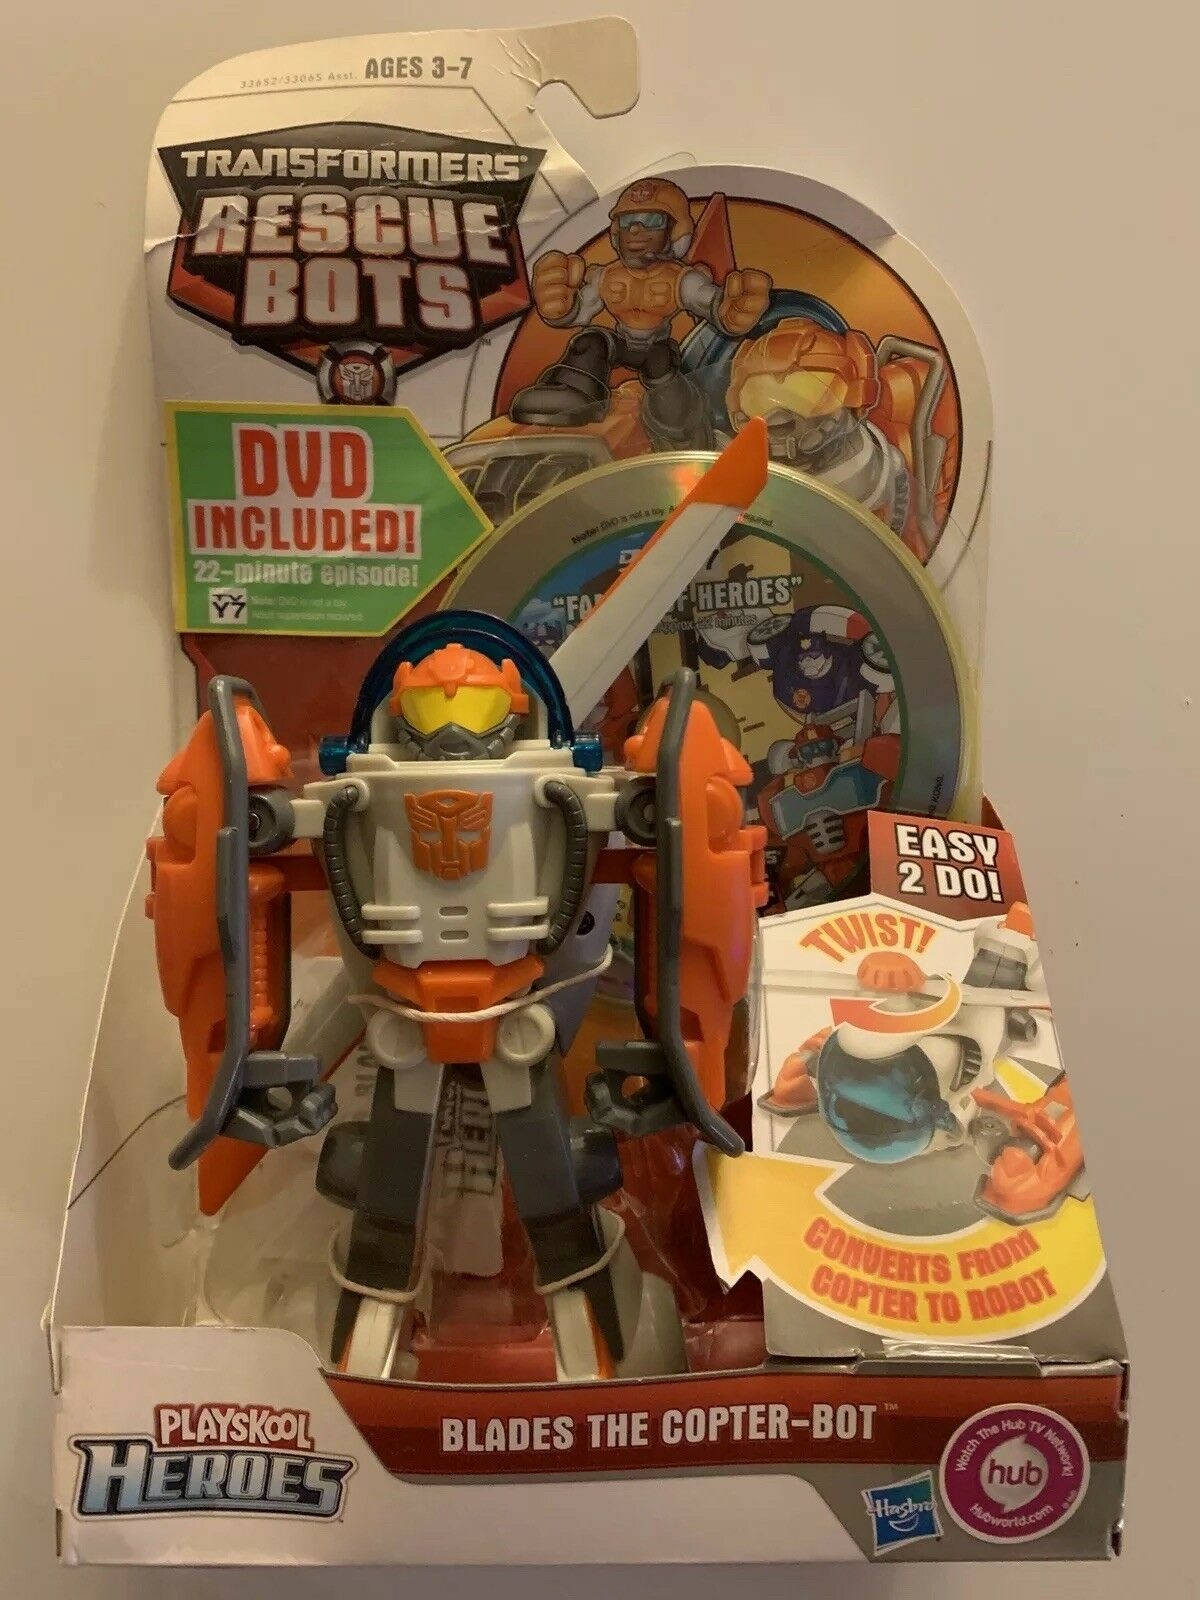 Transformers Rescue Bots - Blades The Copter-Bot Original New